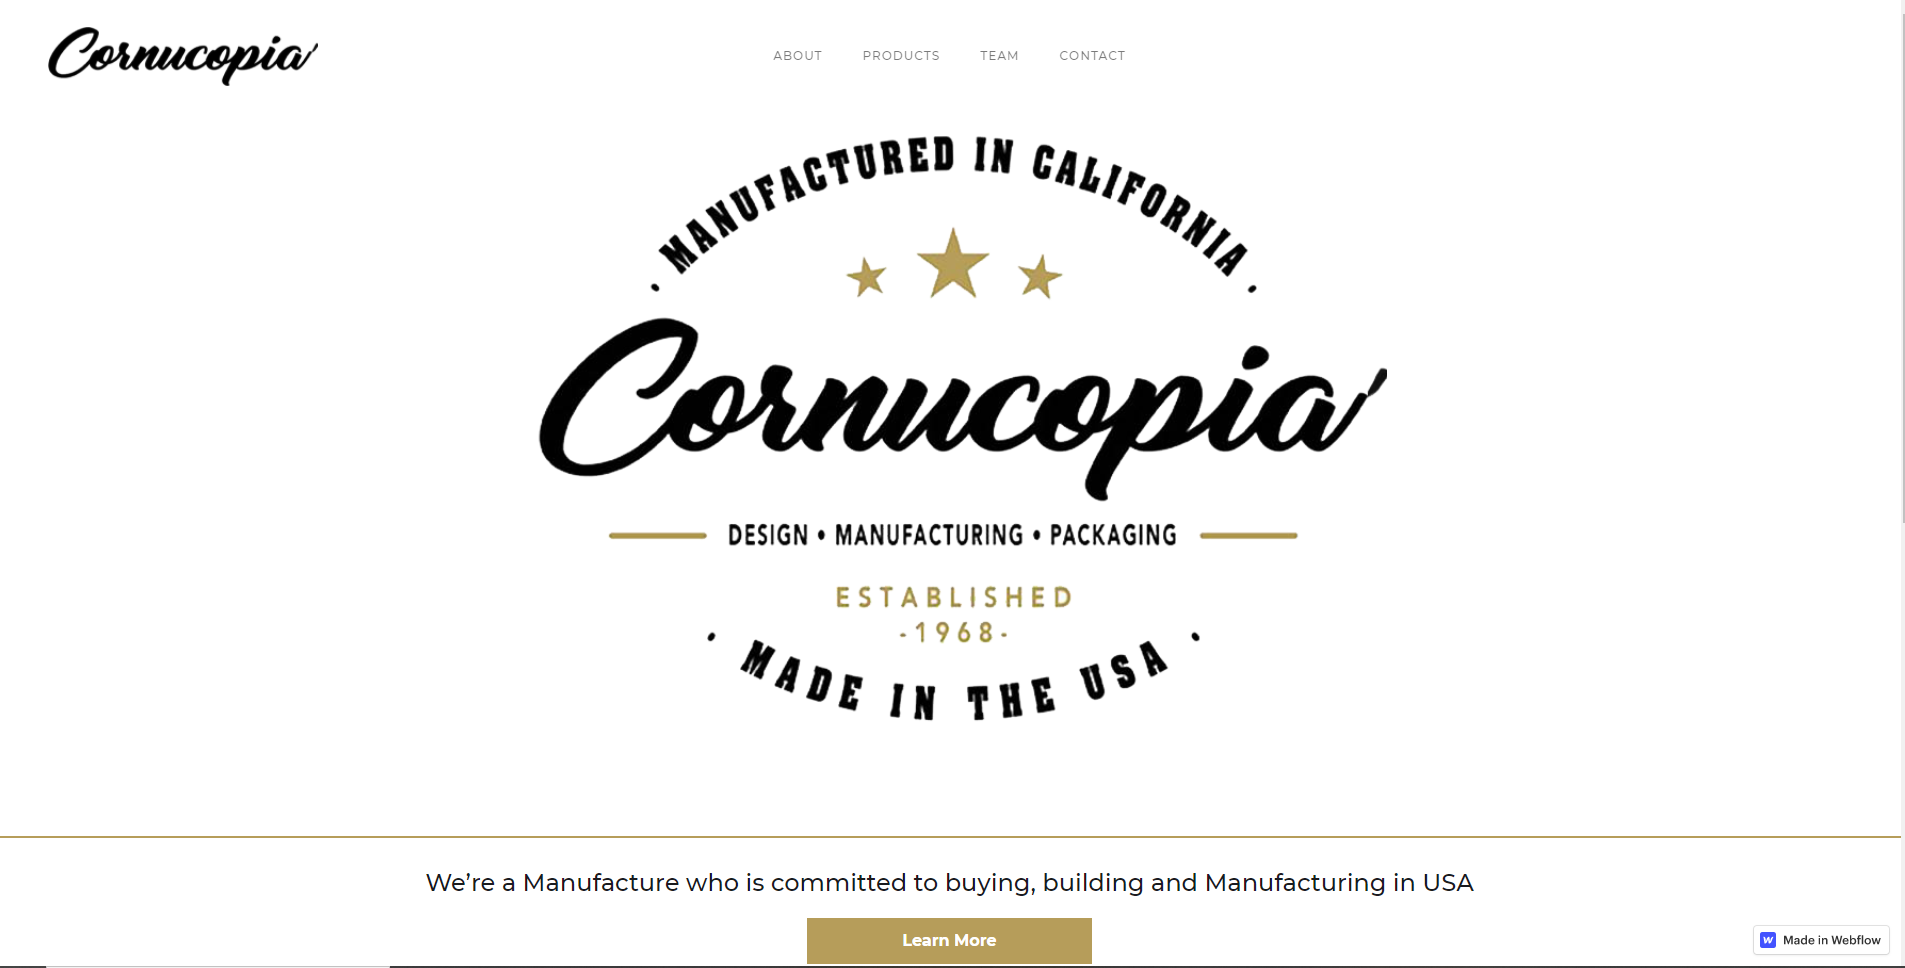 Cornucopa Plastics located in Paso Robles